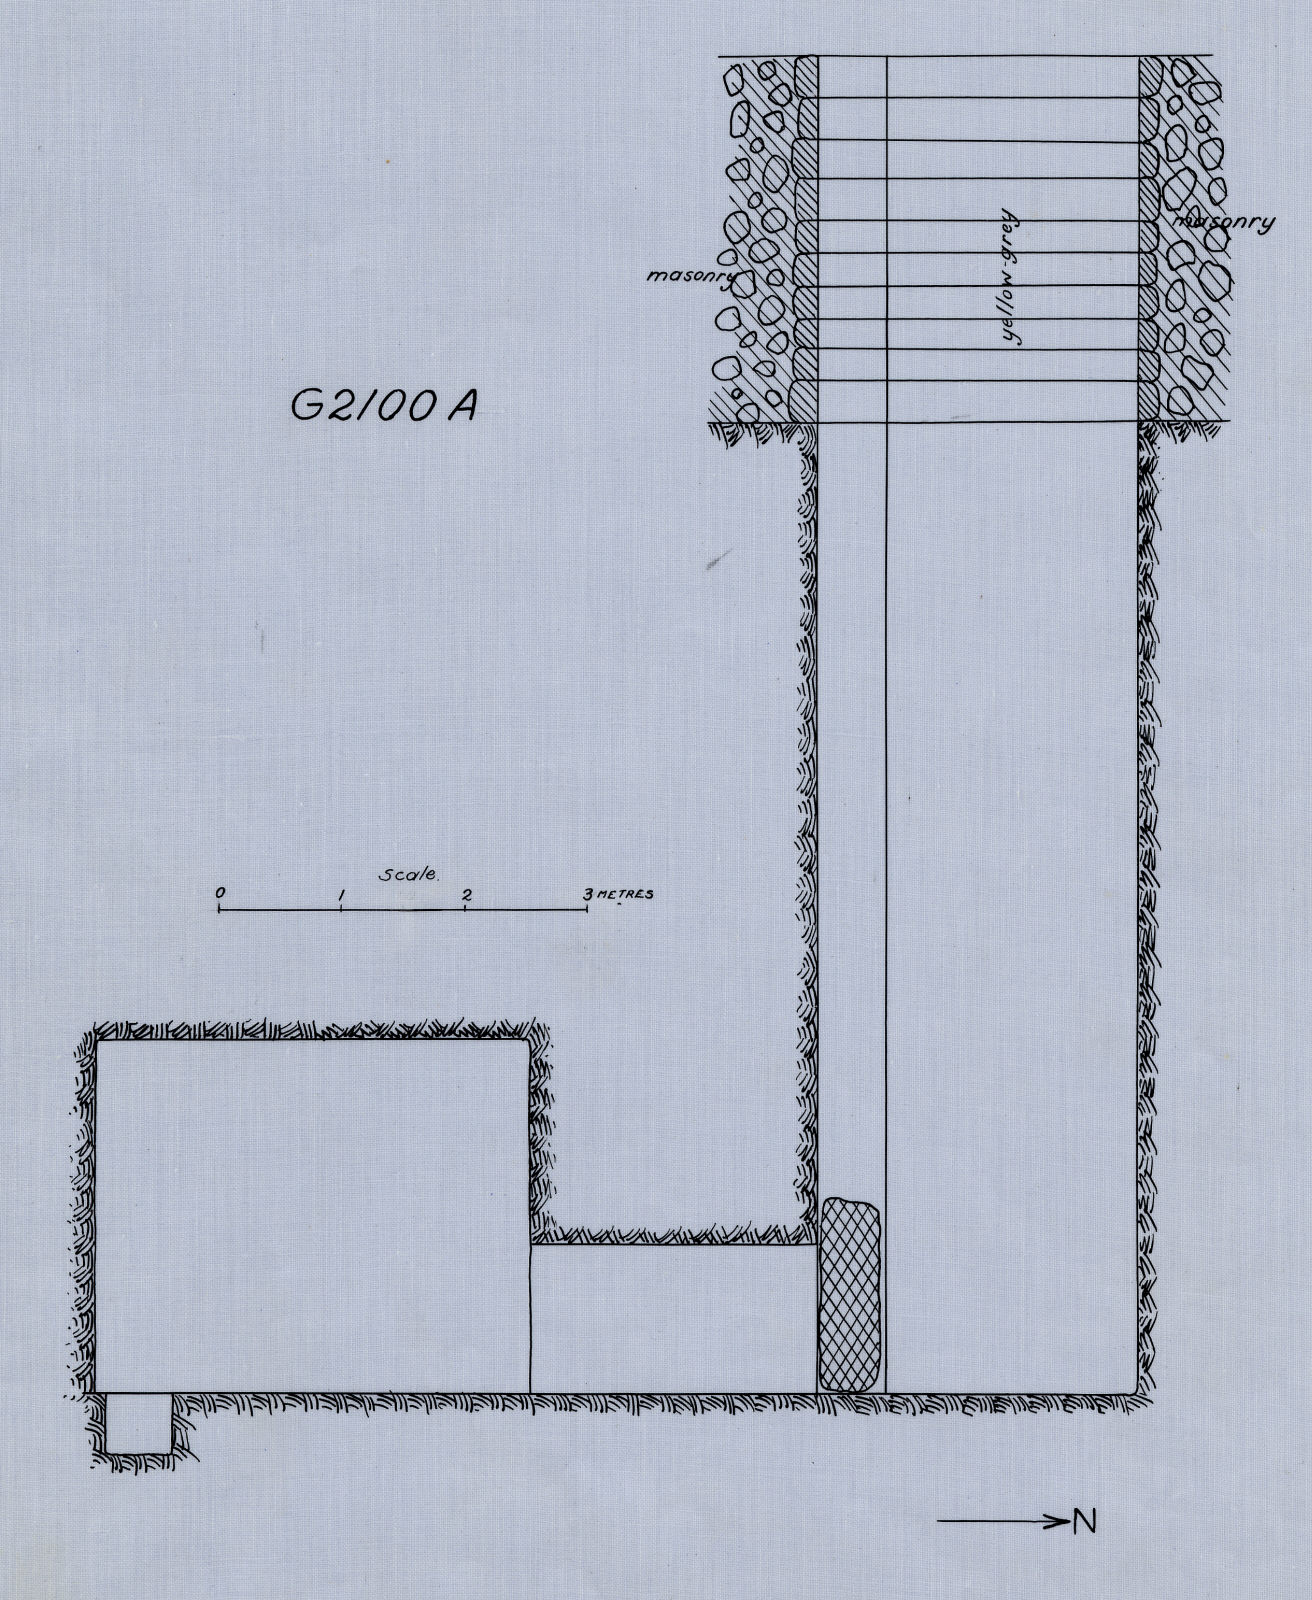 Maps and plans: G 2100, Shaft A